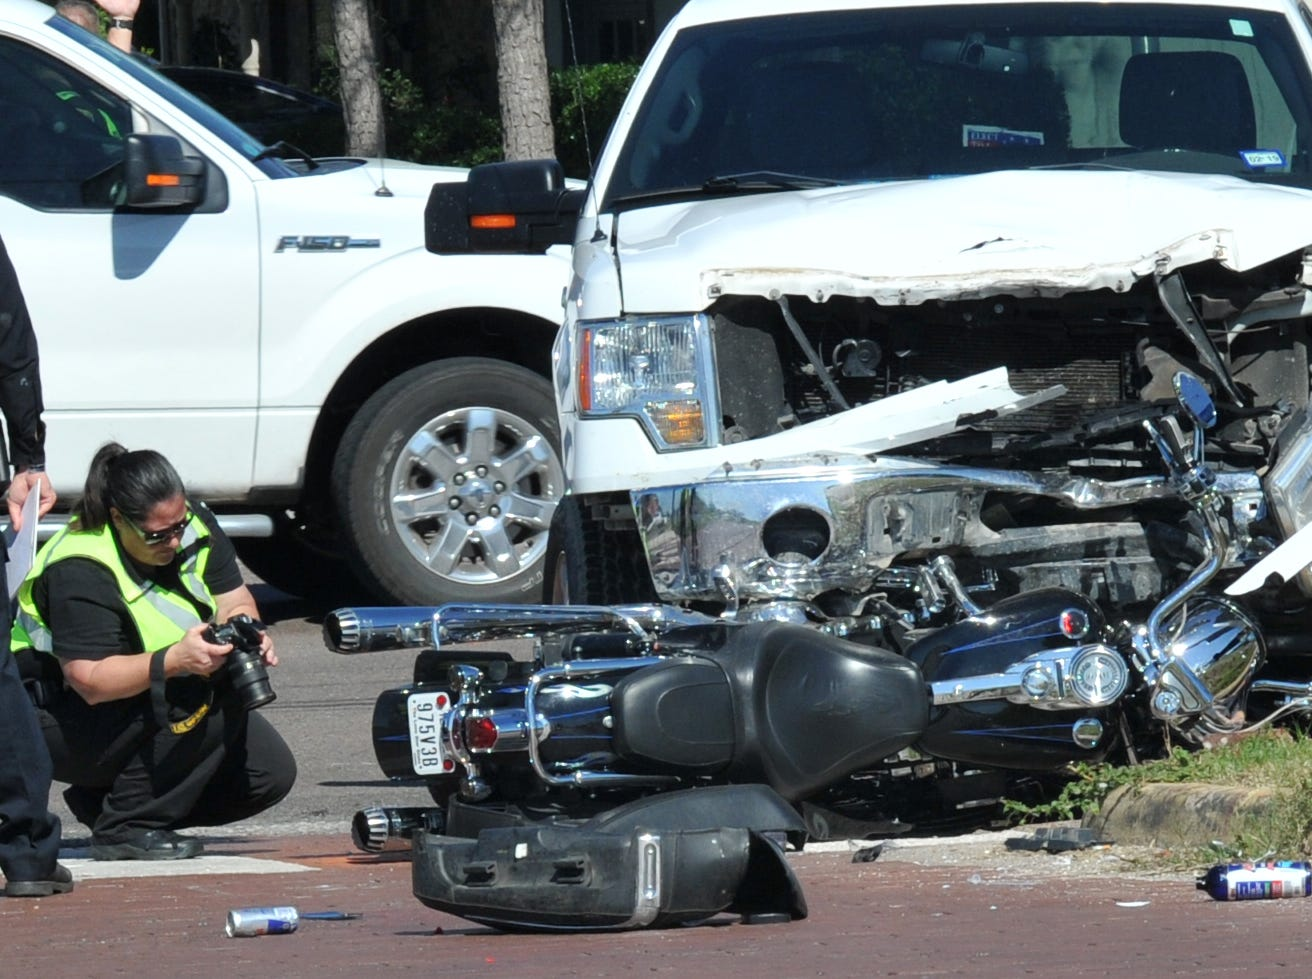 Wichita Falls police work the scene of a injury accident involving a motorcycle and pickup truck Sunday morning, shortly after 11, near the Southwest Parkway and McNeil Avenue intersection.